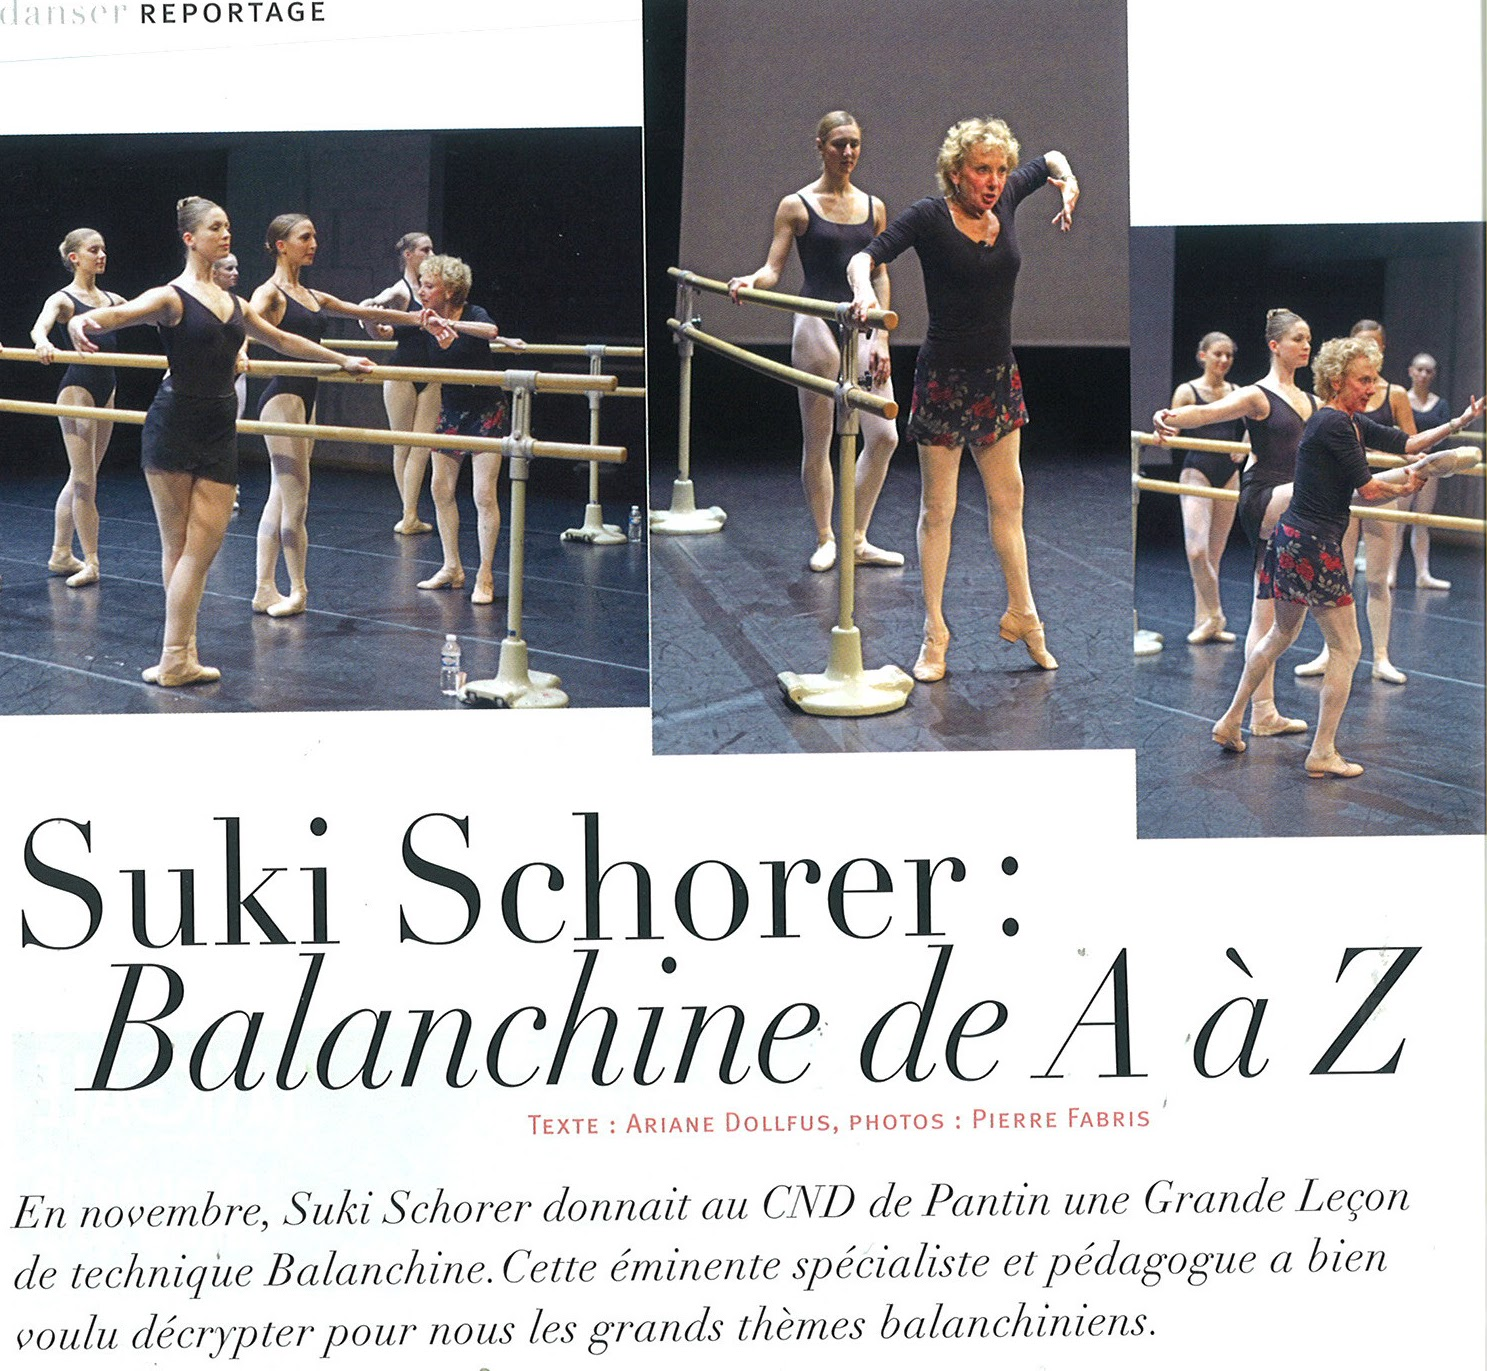 a review of suki schorers reading balanchine pointework (1000-600 bce) rules for the worship a review of suki schorers reading balanchine pointework of yahweh by his chosen people, the.